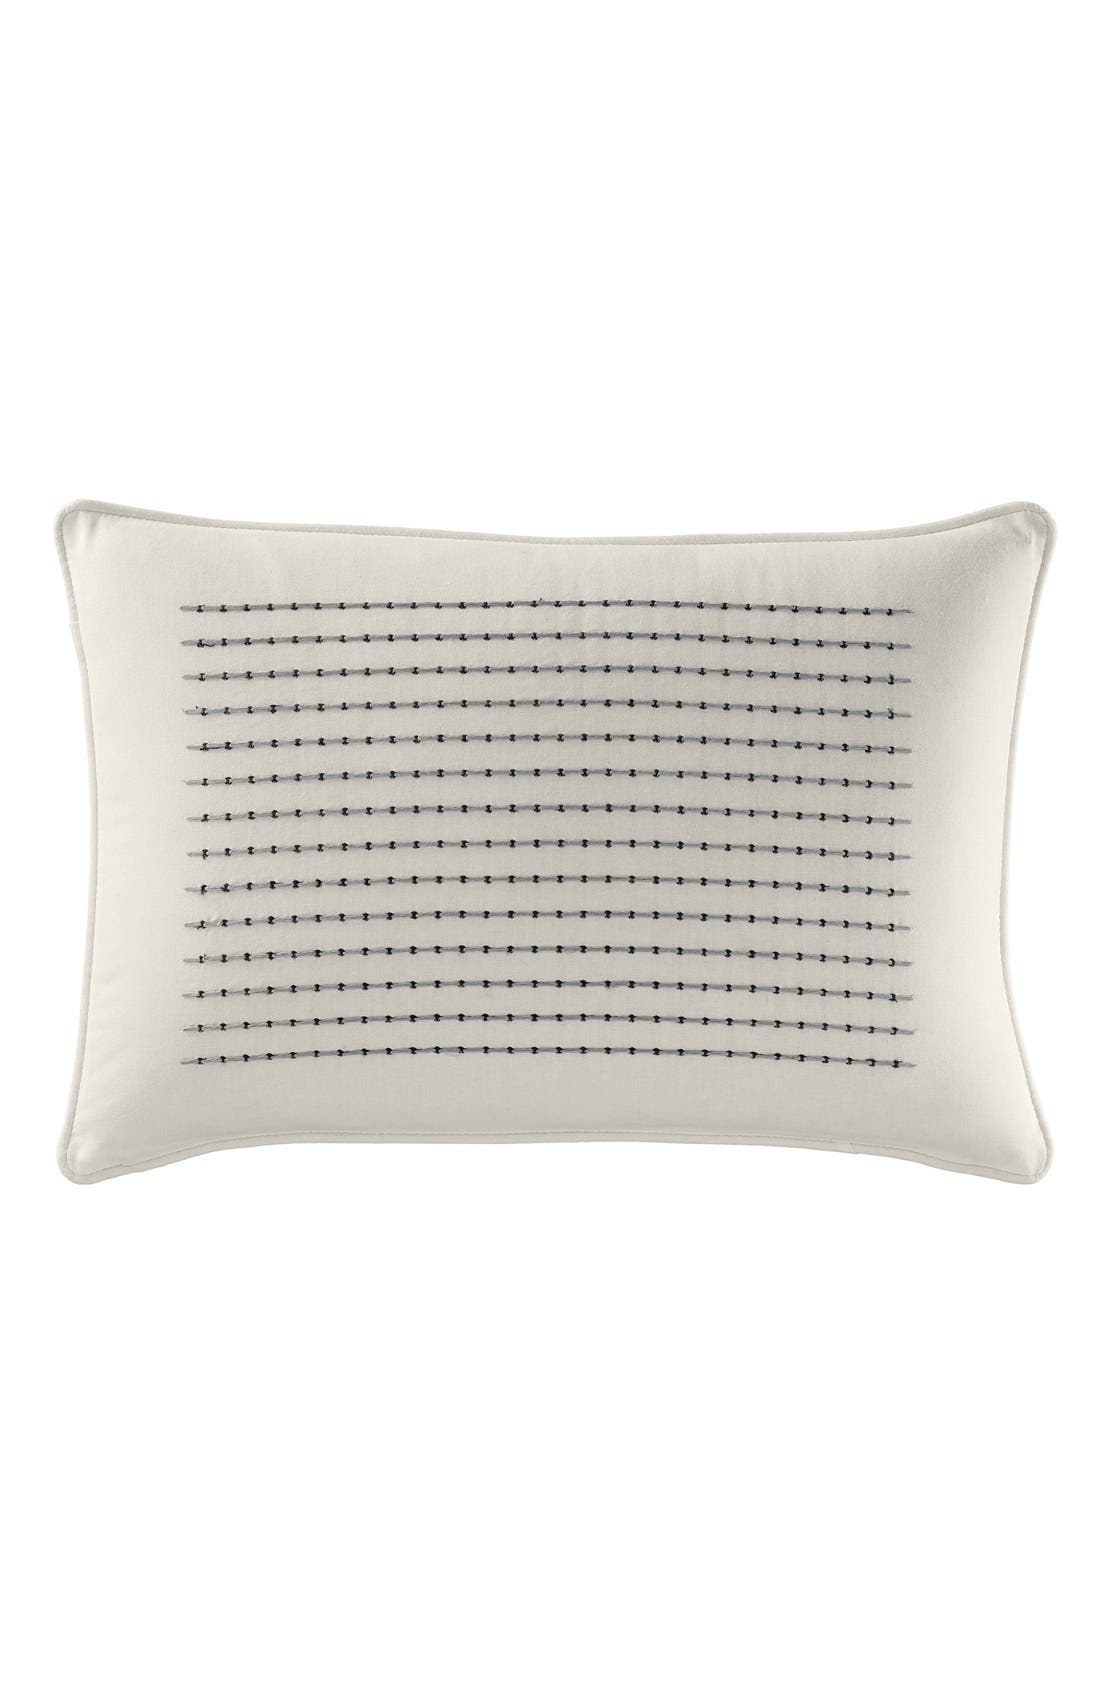 Caldwell Embroidered Pillow,                         Main,                         color, White